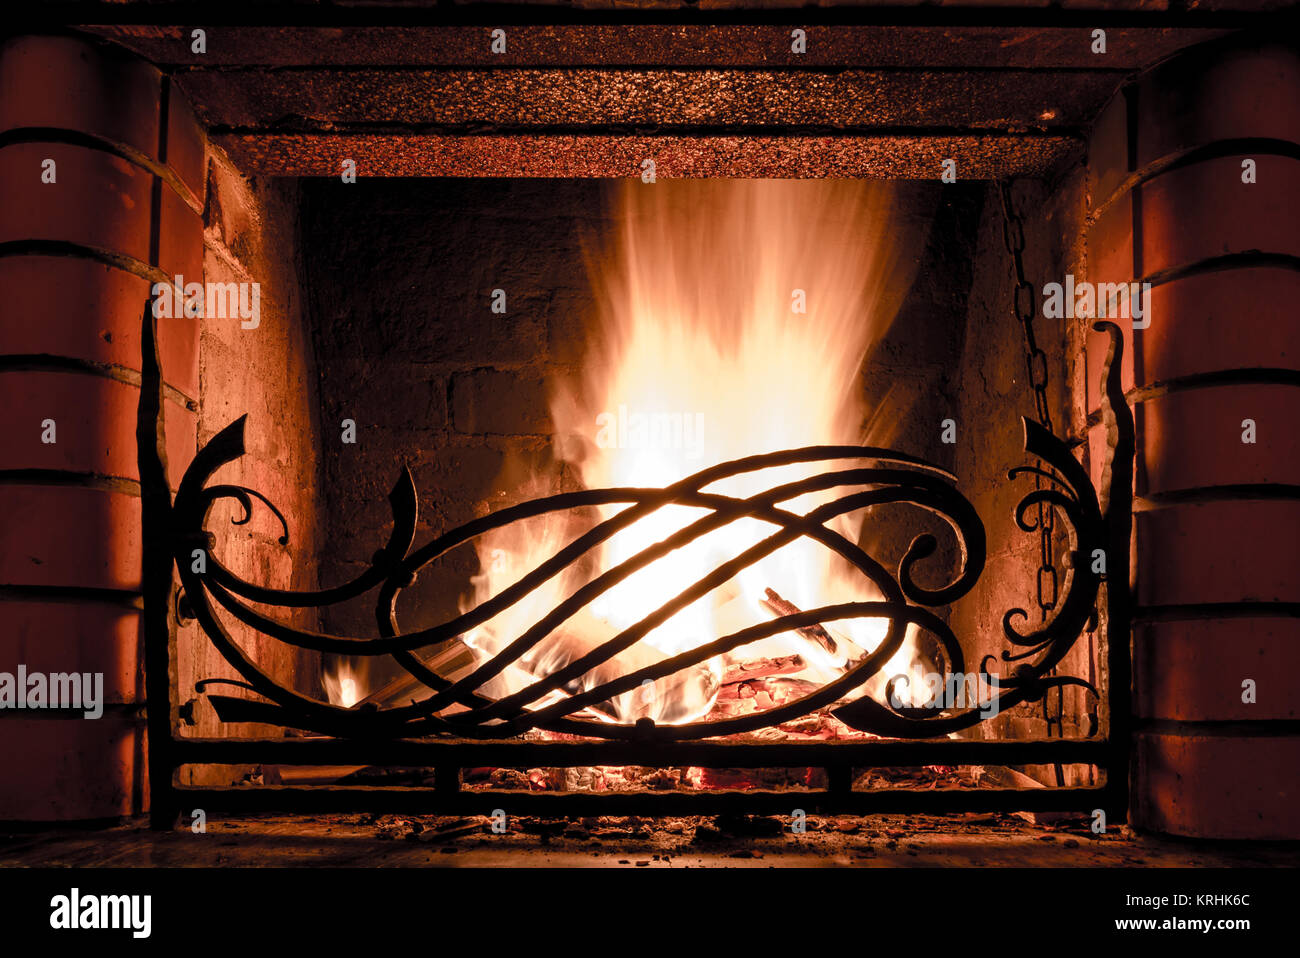 liberty hy legs home dp foundry duty heavy with amazon kitchen c iron grate wood fireplace cast com